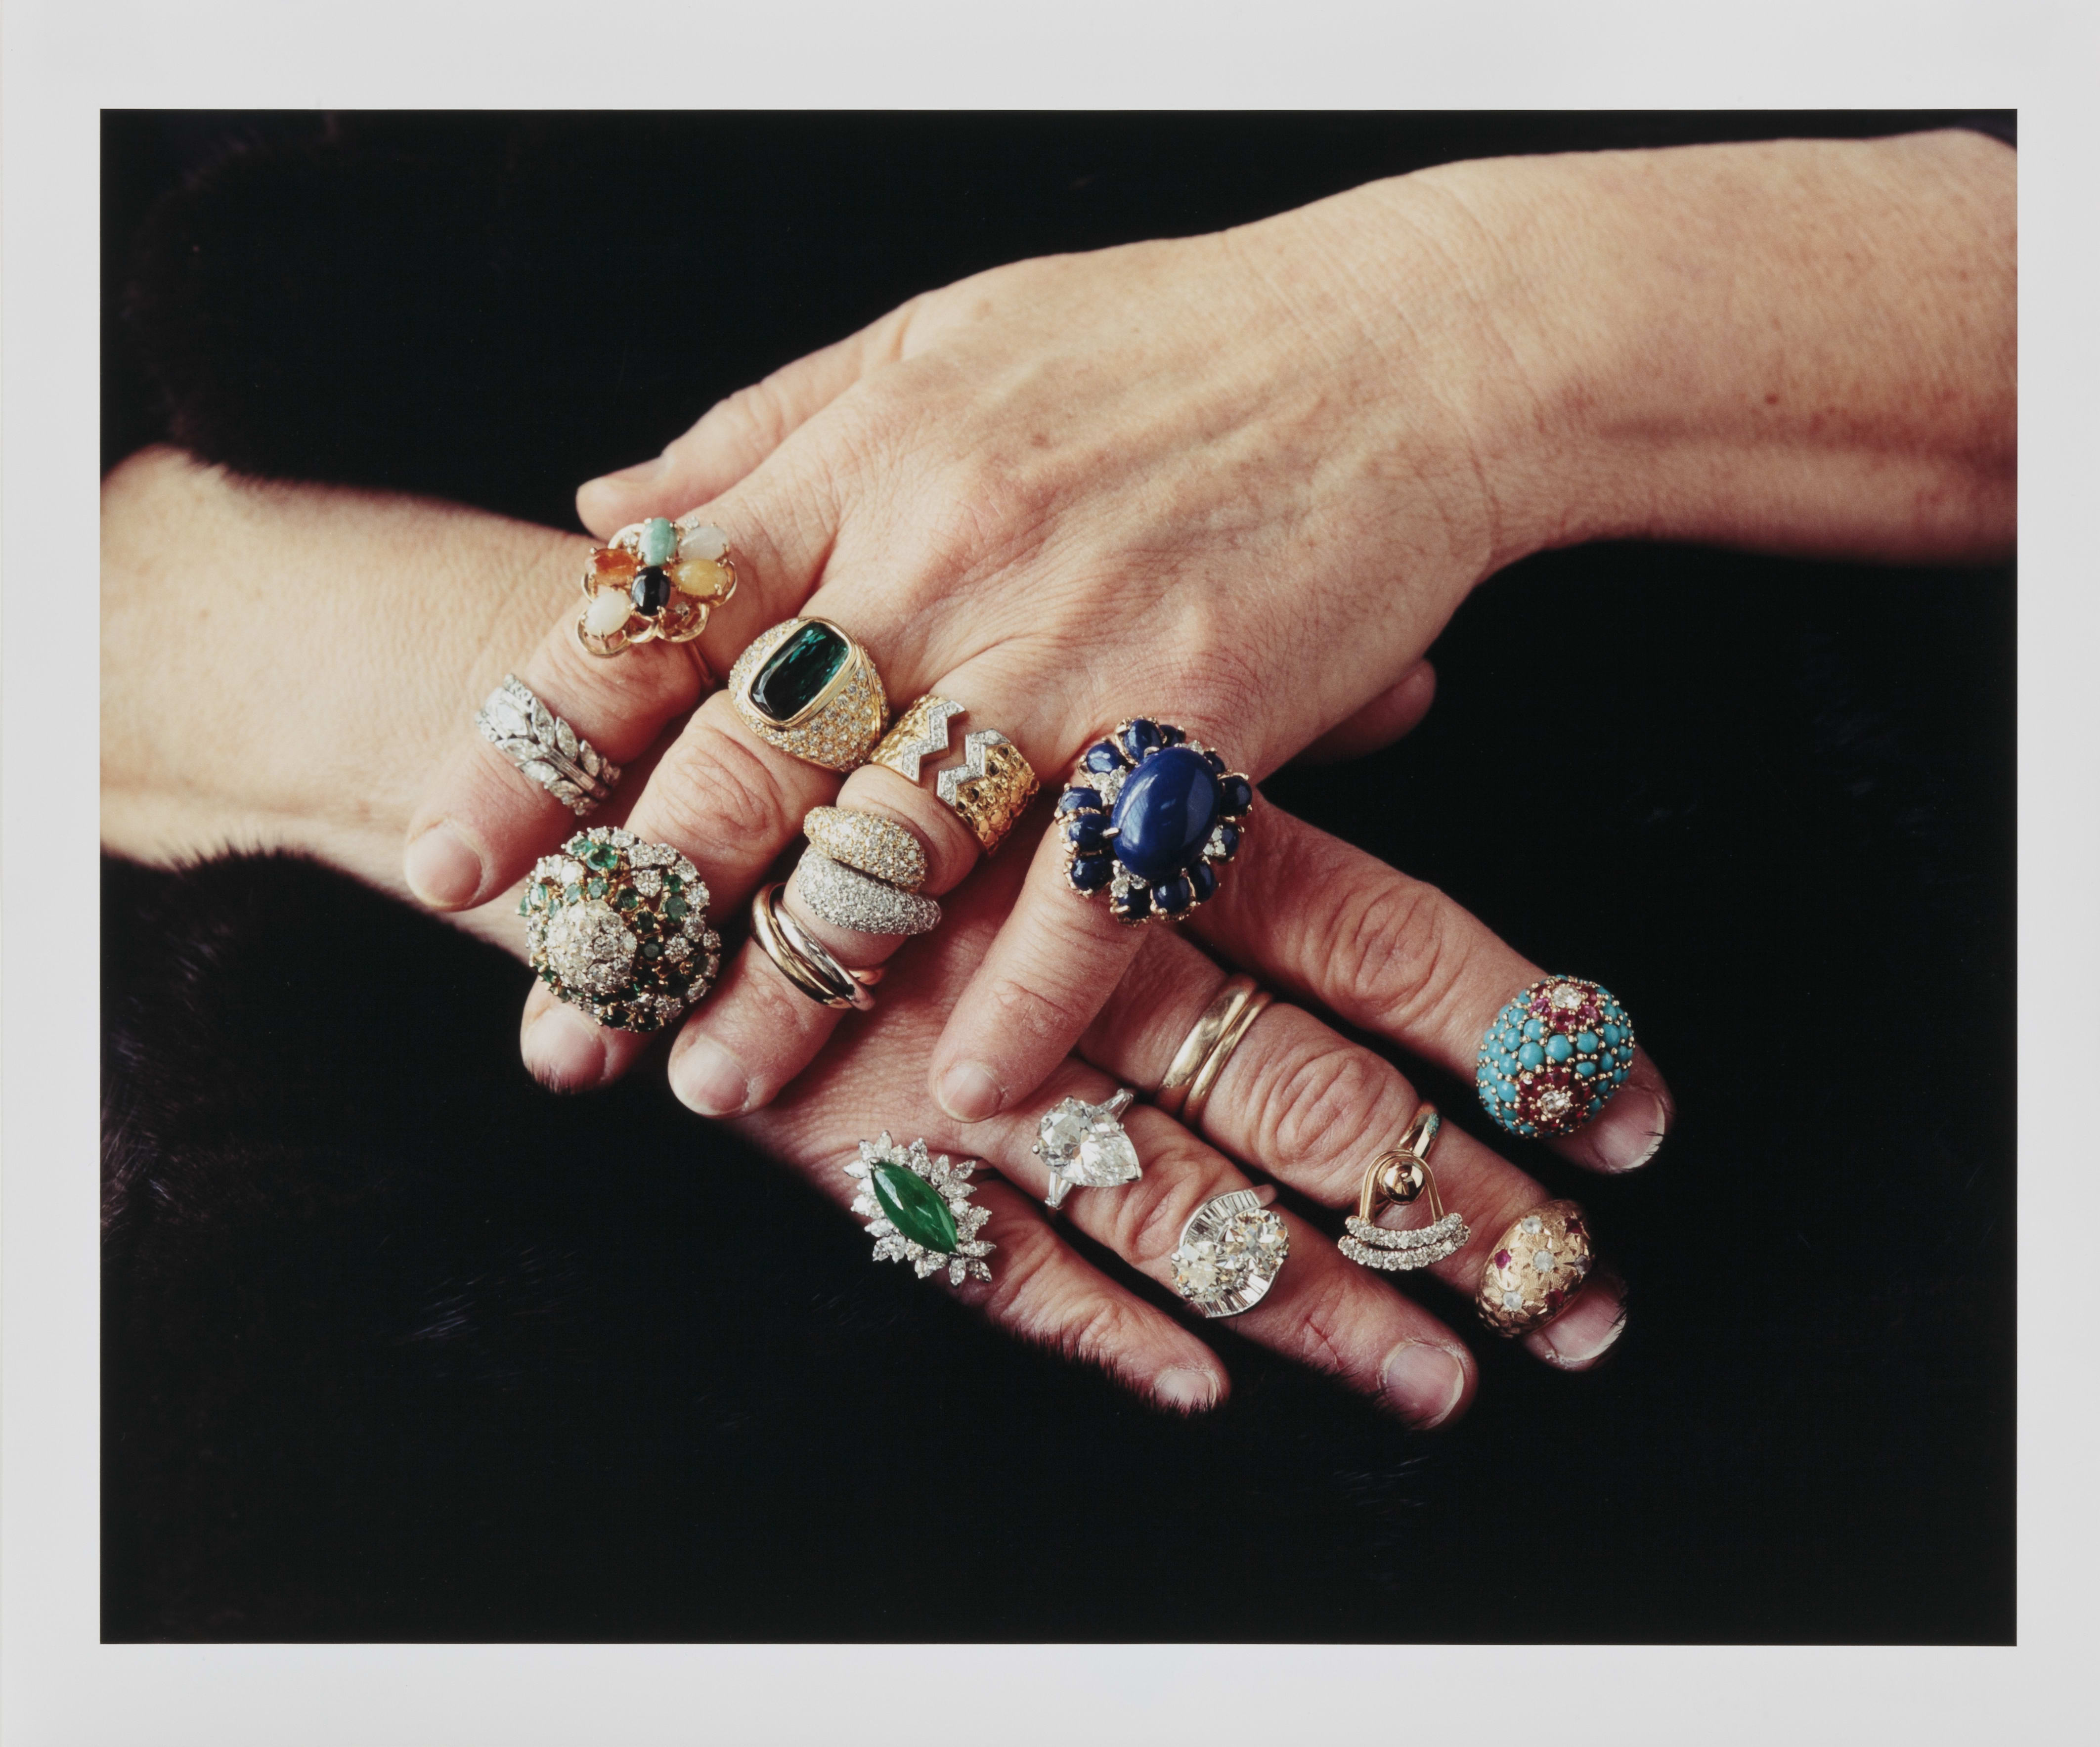 Two light skinned hands rest, calmly touching each other, on a black fur background. Each finger, except for the thumbs, wears one or more jeweled rings, in a mixture of colors and metals.